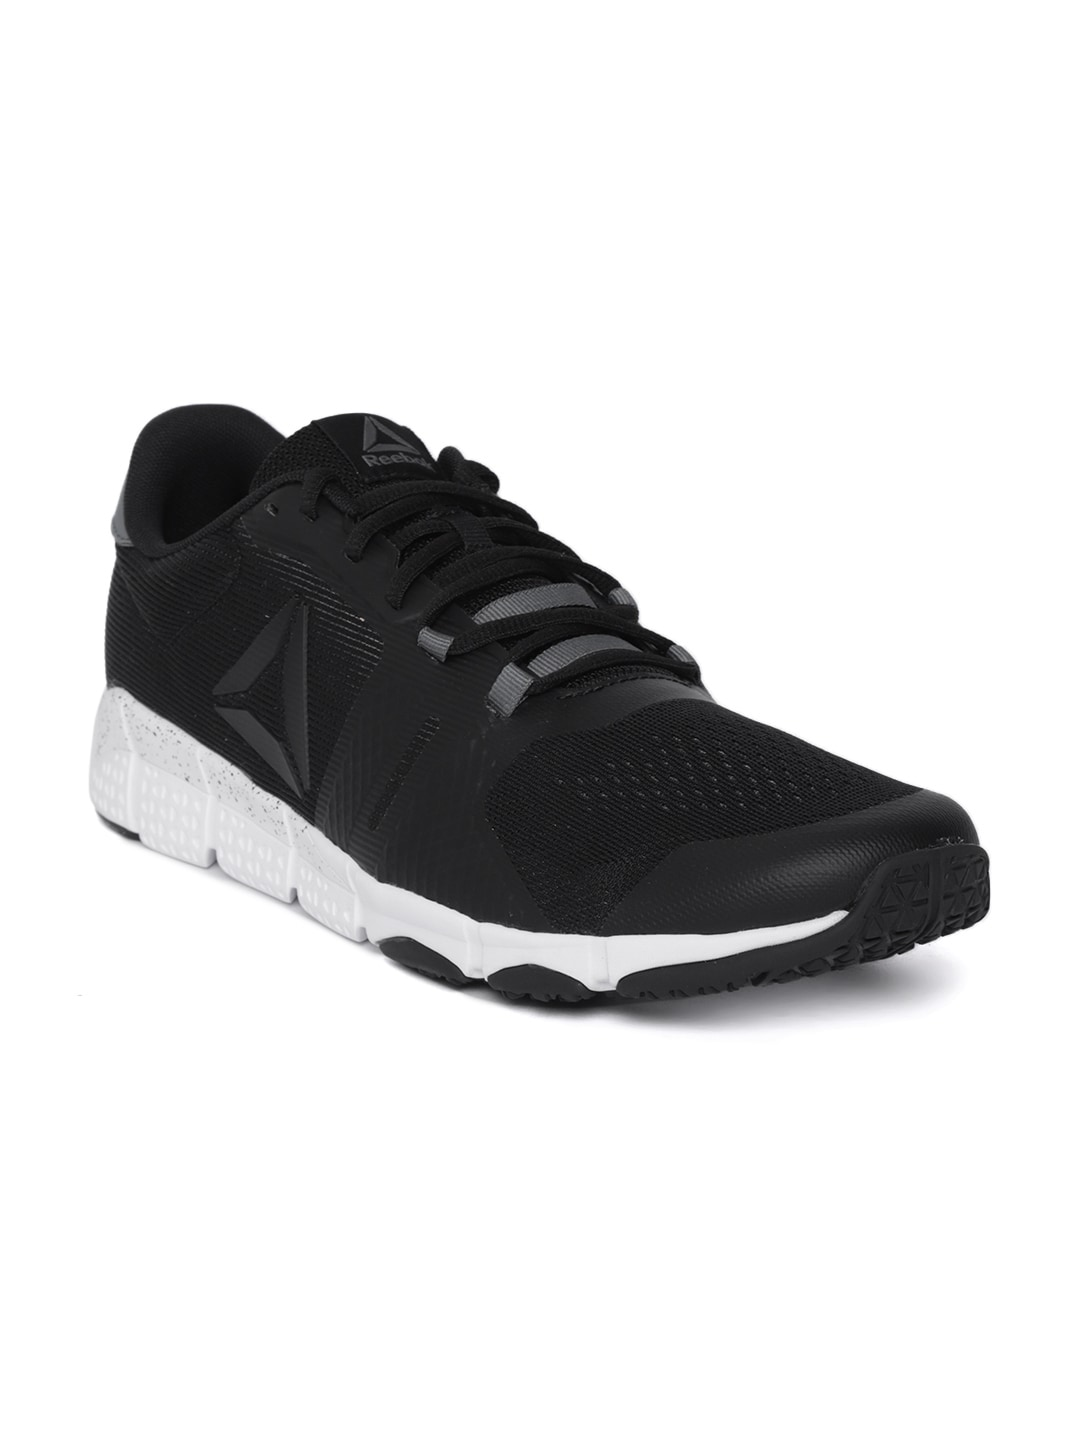 Reebok Runtone Shoe Sweat S - Buy Reebok Runtone Shoe Sweat S online in  India 69a58cfb2